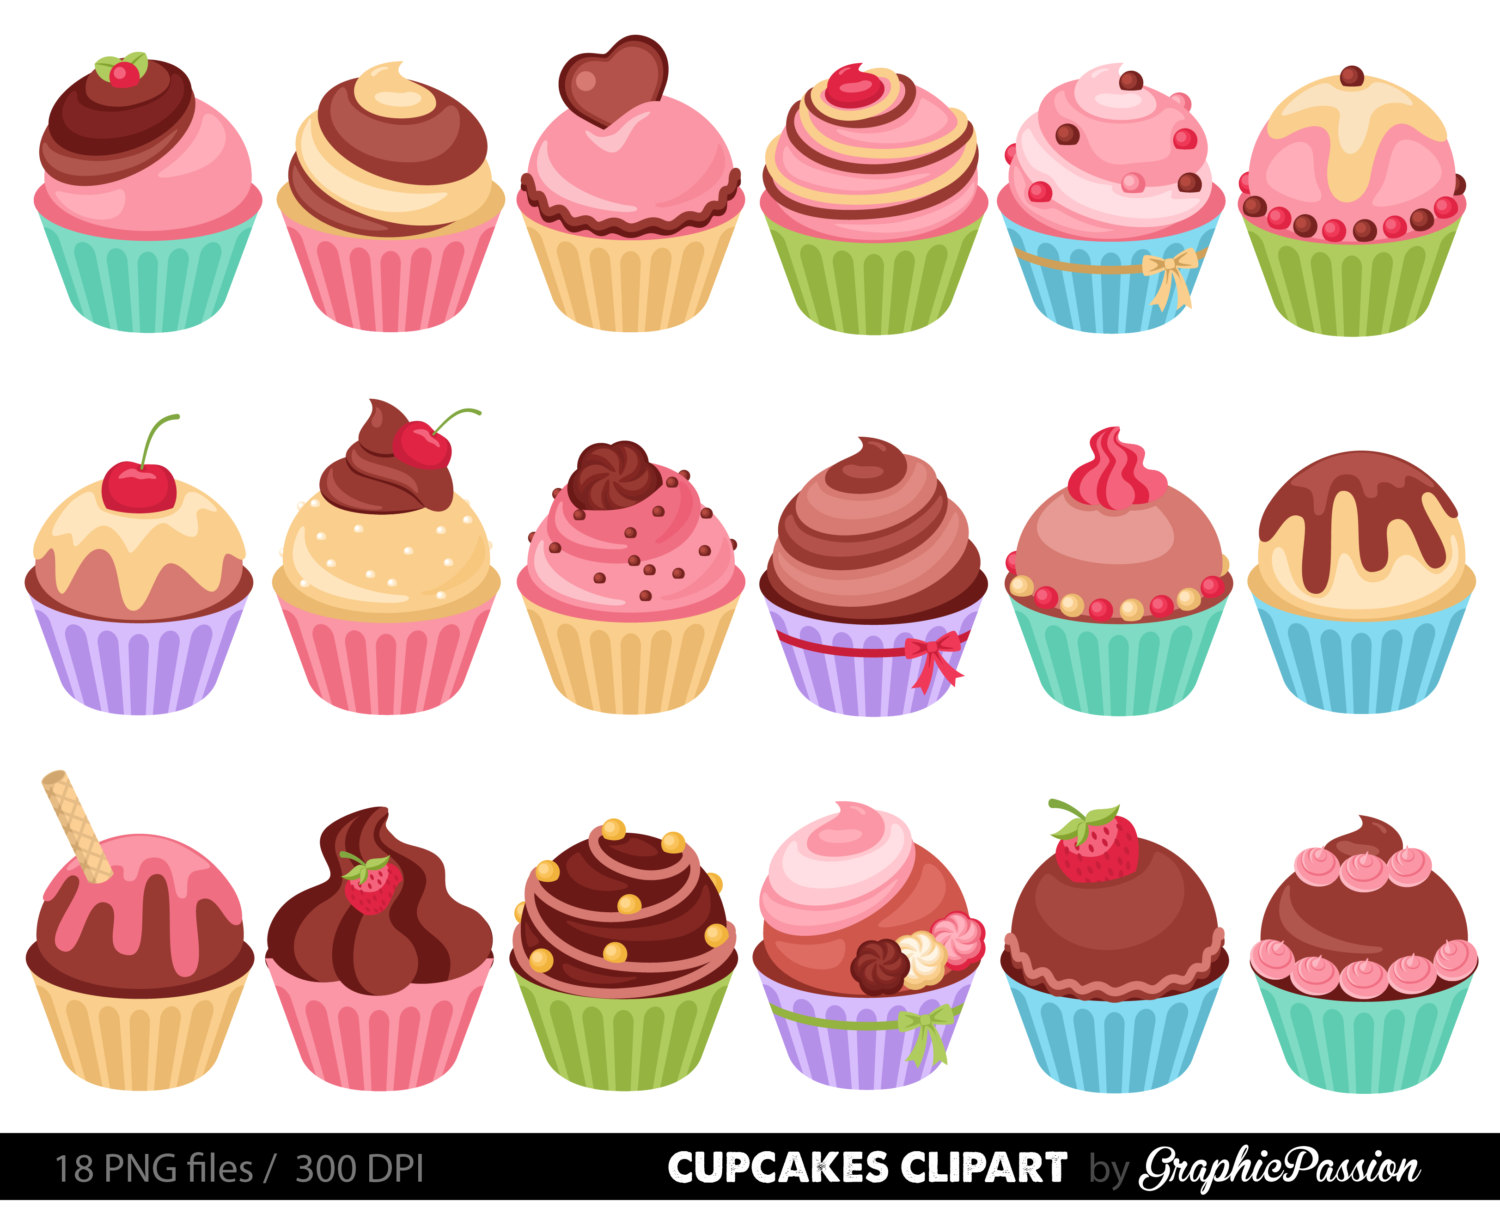 Cupcakes Clipart Digital Cupcake Clip Ar-Cupcakes clipart digital cupcake clip art cupcake digital illustration cupcake Vector birthday cakes bakery sweets frosting chocolate-13